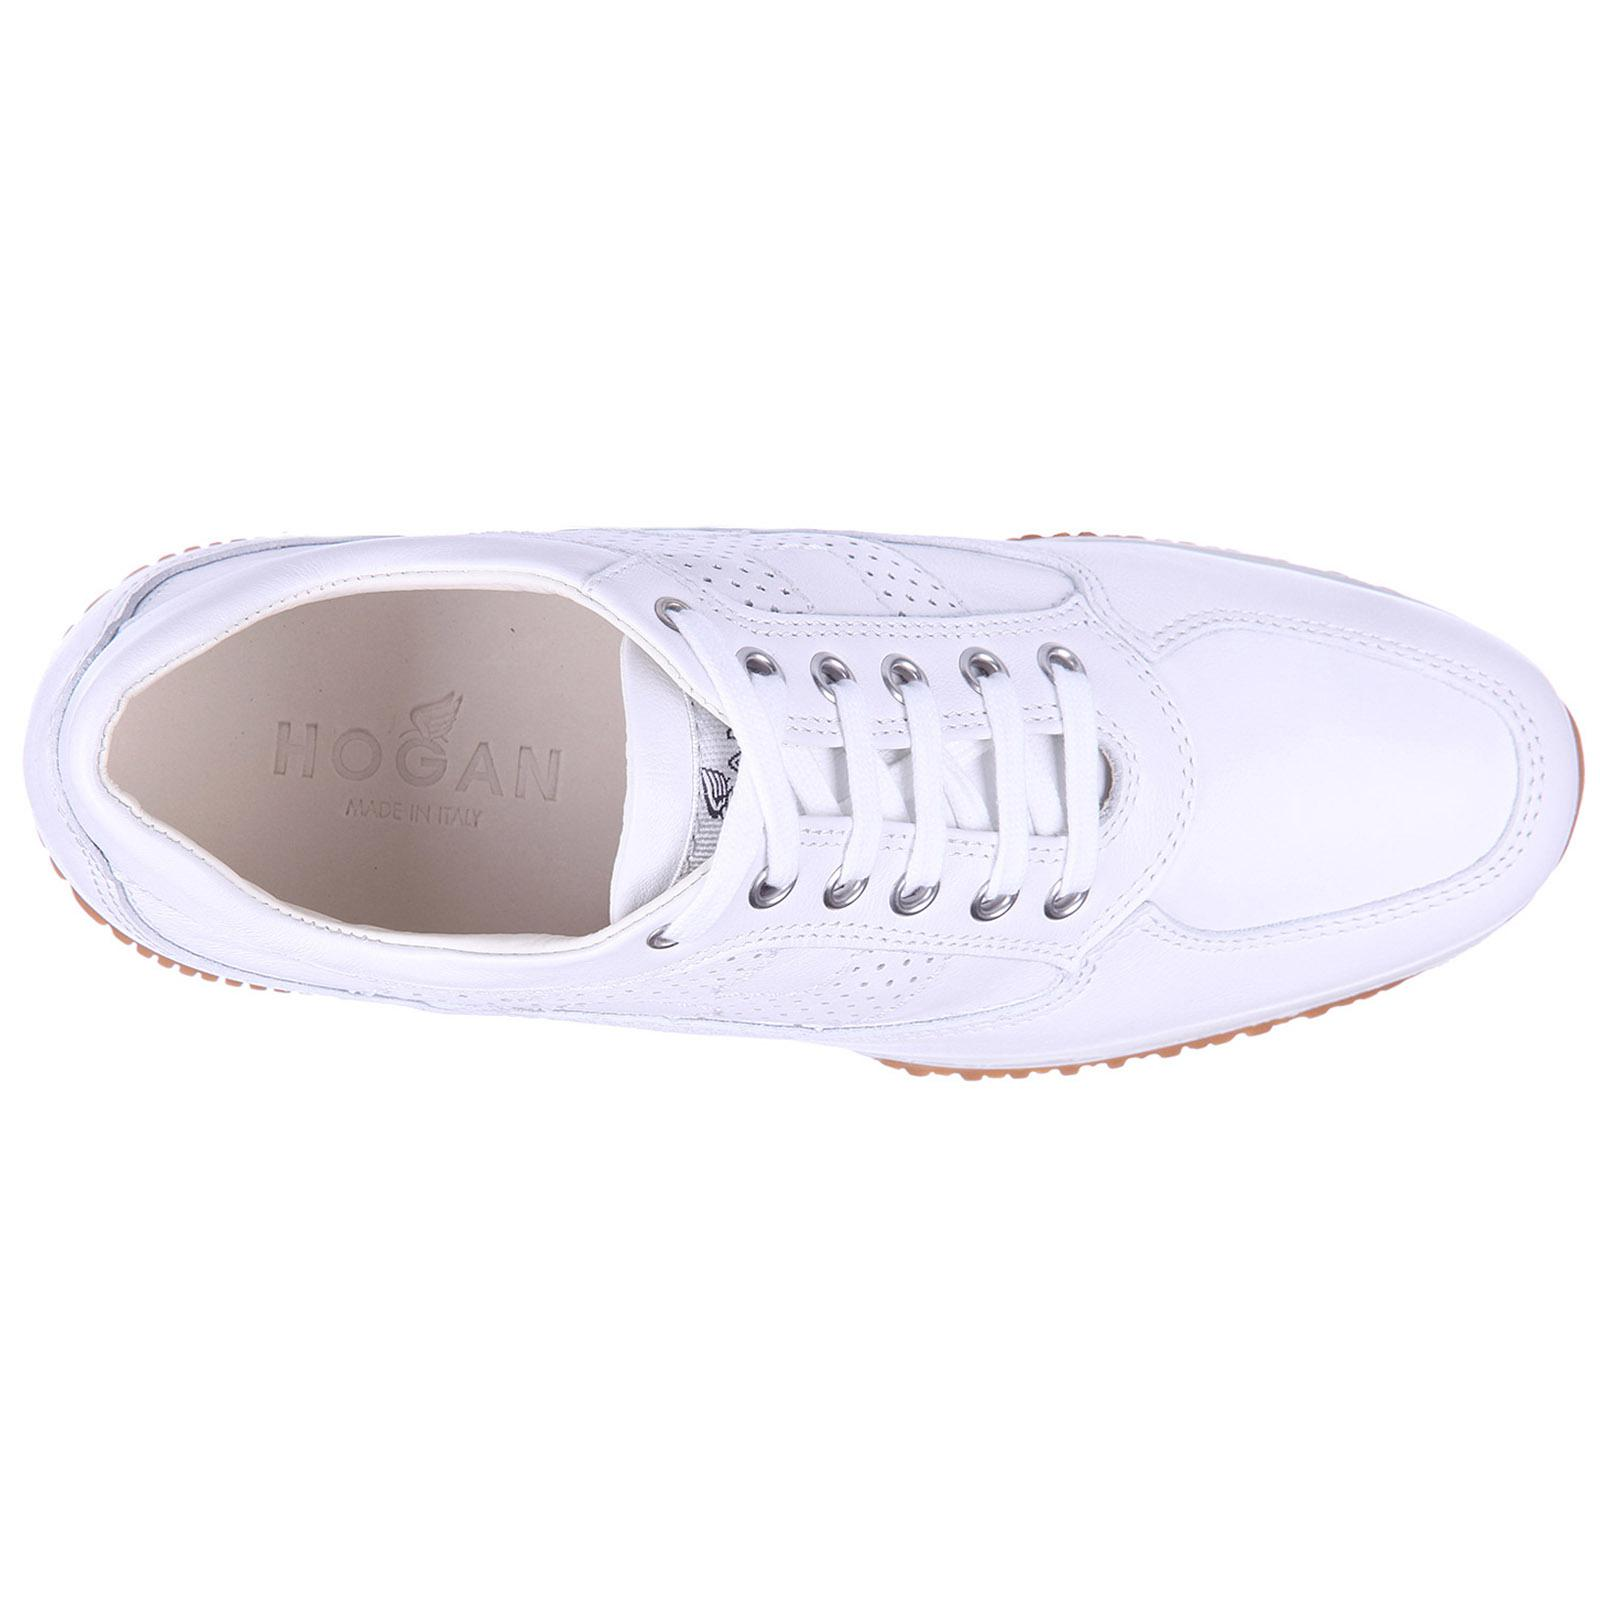 Hogan - White Shoes Leather Trainers Sneakers Interactive H Bucata - Lyst.  View fullscreen 67b6f23a6a5